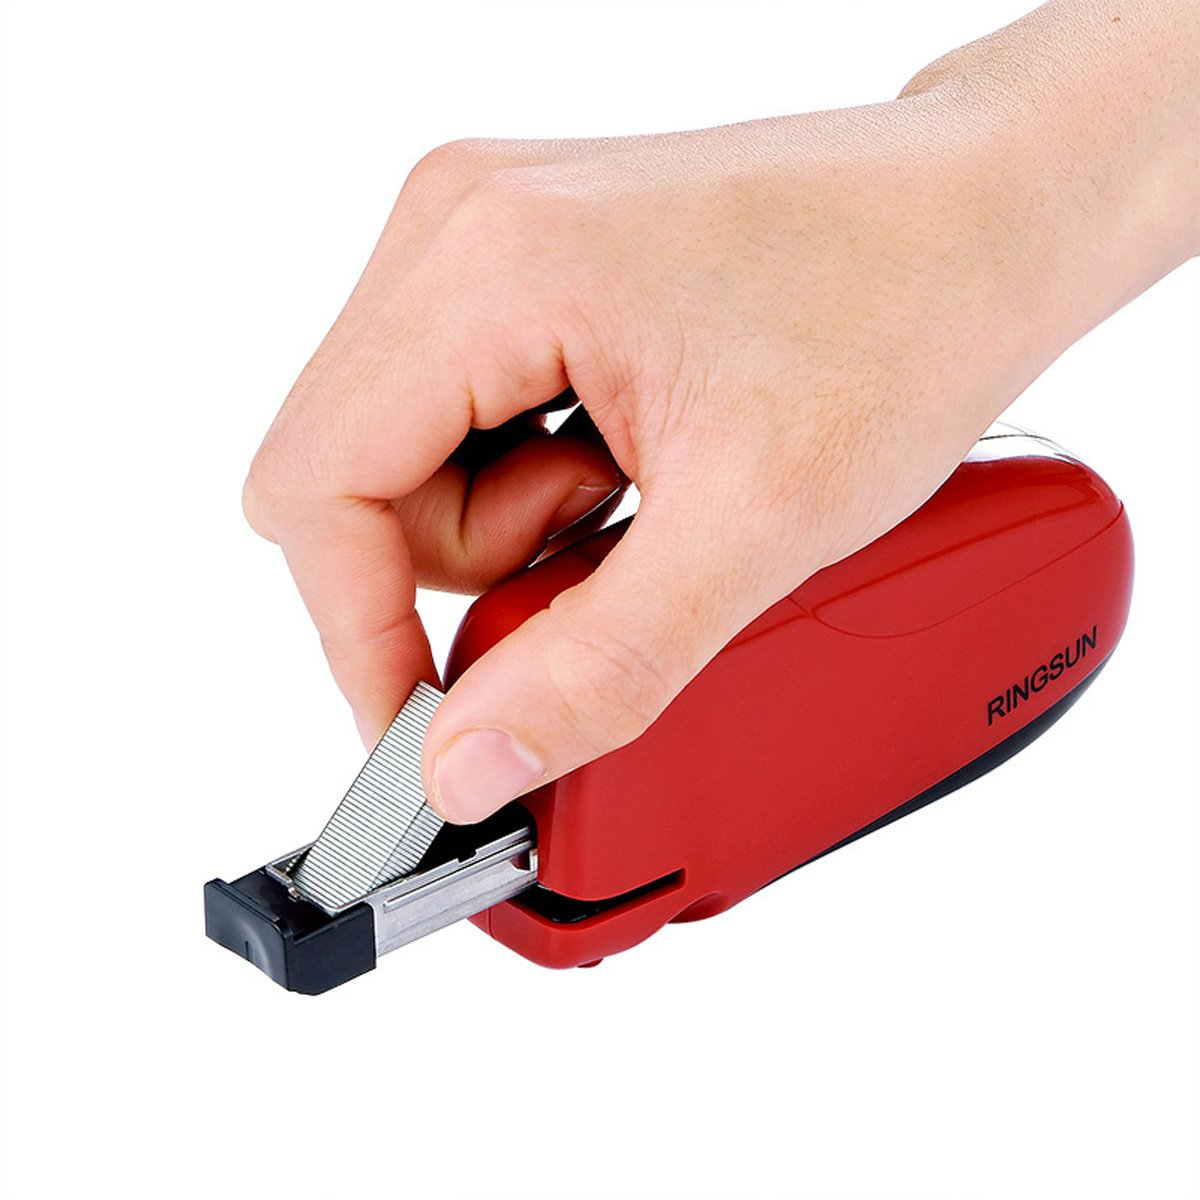 RINGSUN Electric Stapler Automatic 10 Sheets Capacity AC USB Power Or Battery Office School Home Use by RINGSUN (Image #5)